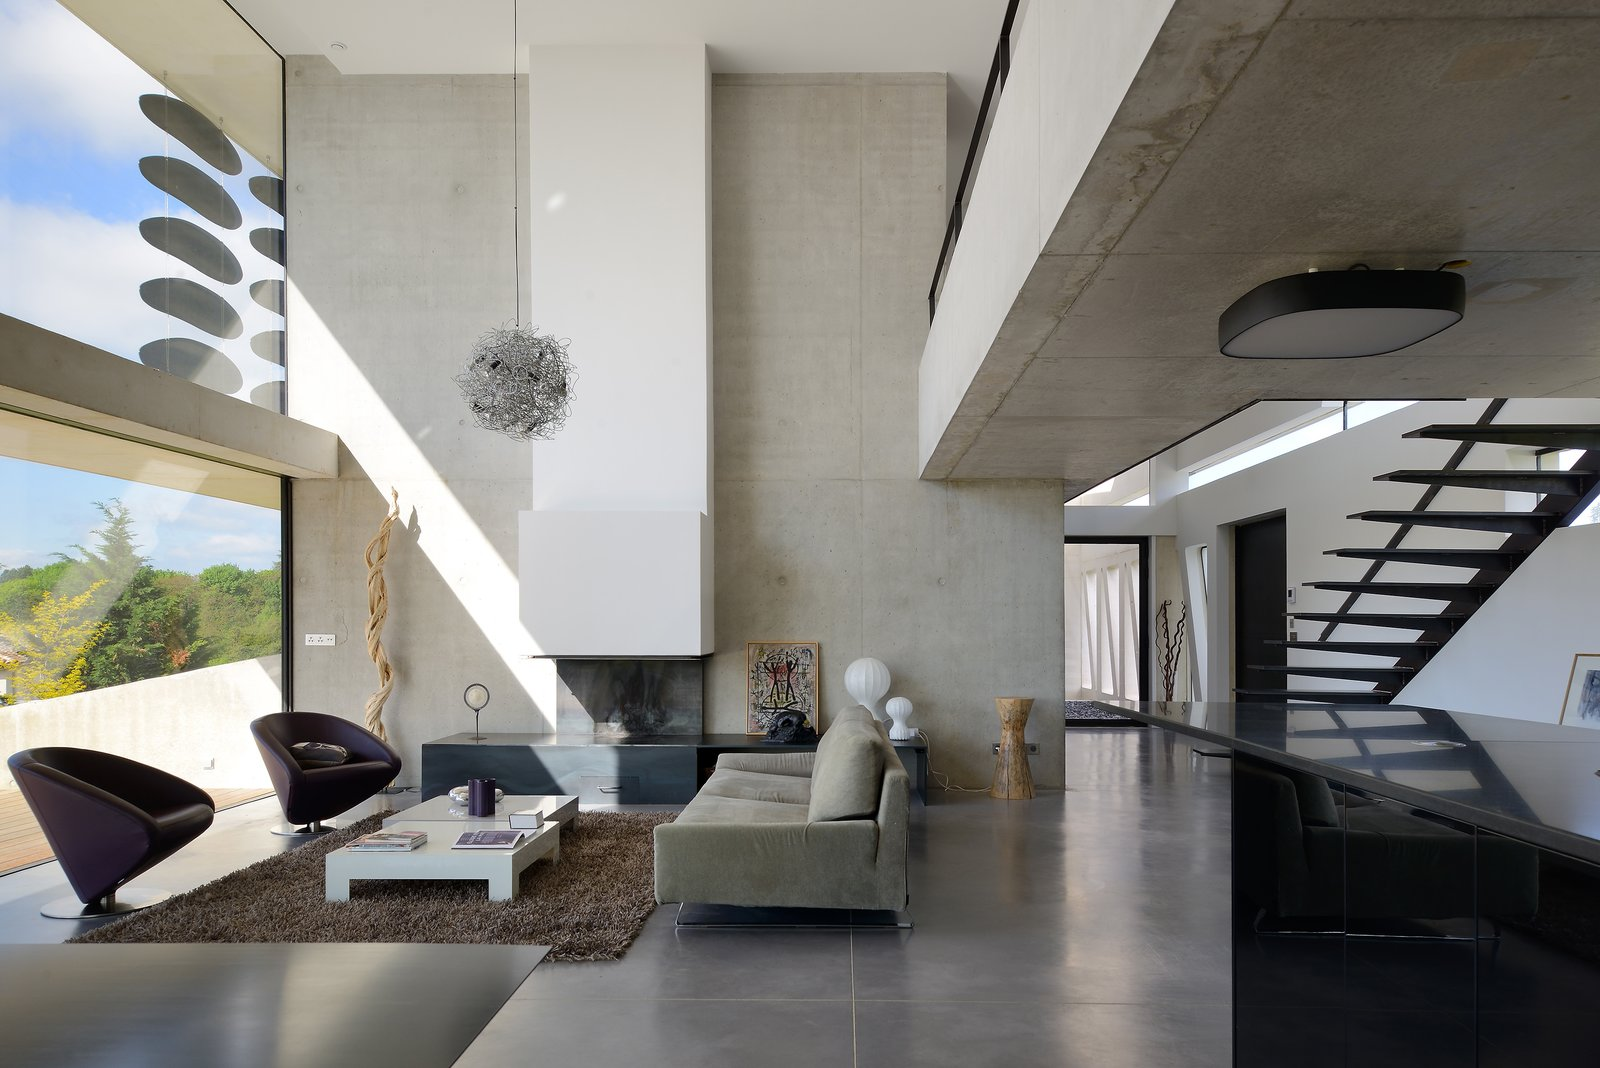 Sofa, Chair, Standard Layout, Concrete, Ceiling, Staircase, Metal, and Metal a ray of light penetrating the livingromm  Best Staircase Chair Standard Layout Photos from Chipster Blister House